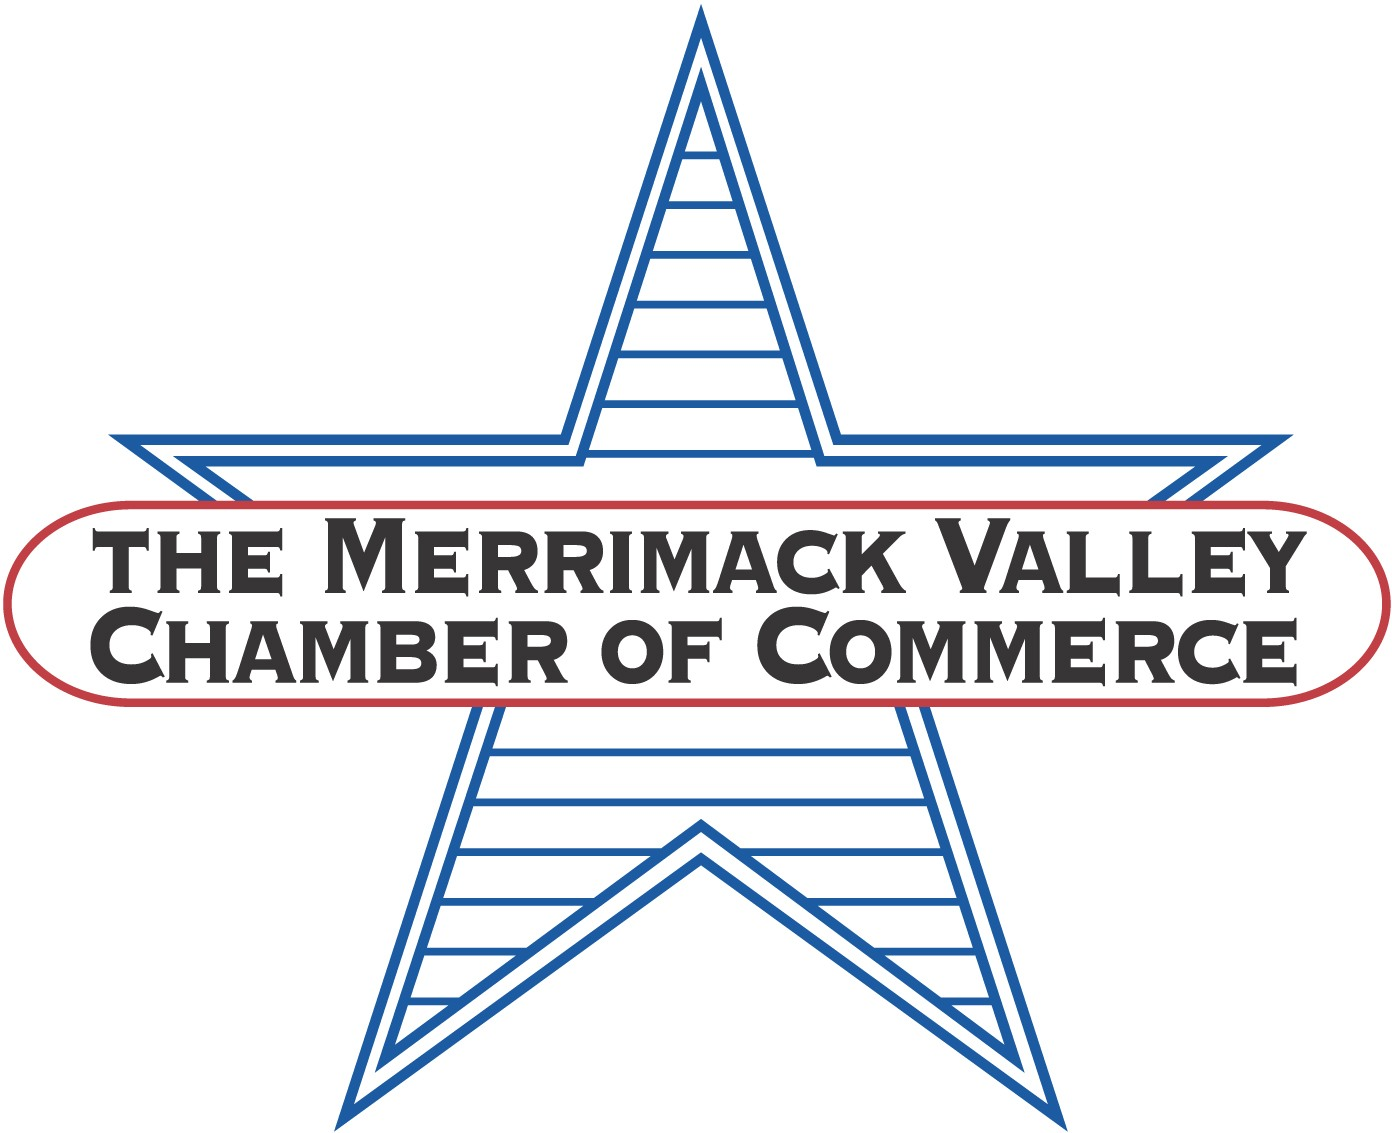 Merrimack Valley Chamber of Commerce